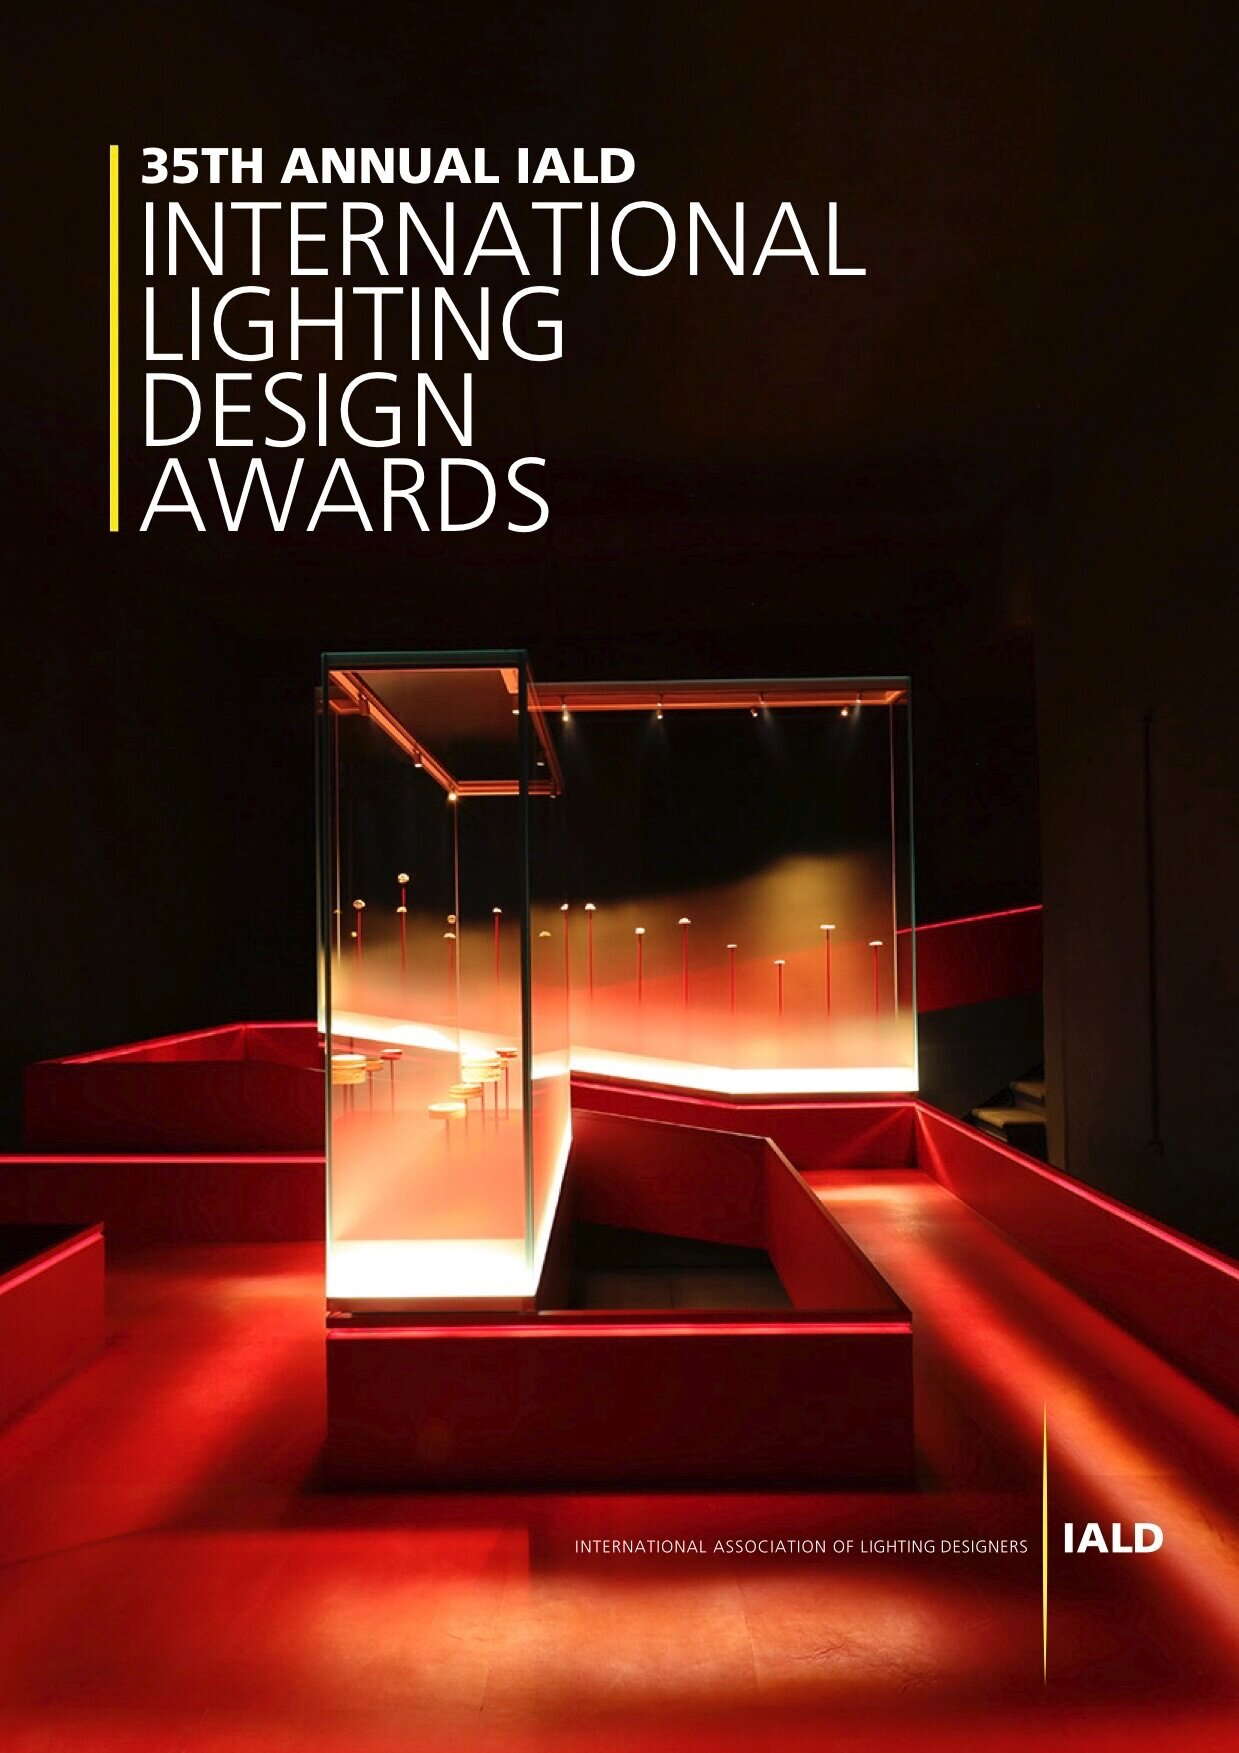 2018 Awards Book for the 35th Annual IALD International Lighting Design Awards.   Click to view full book.